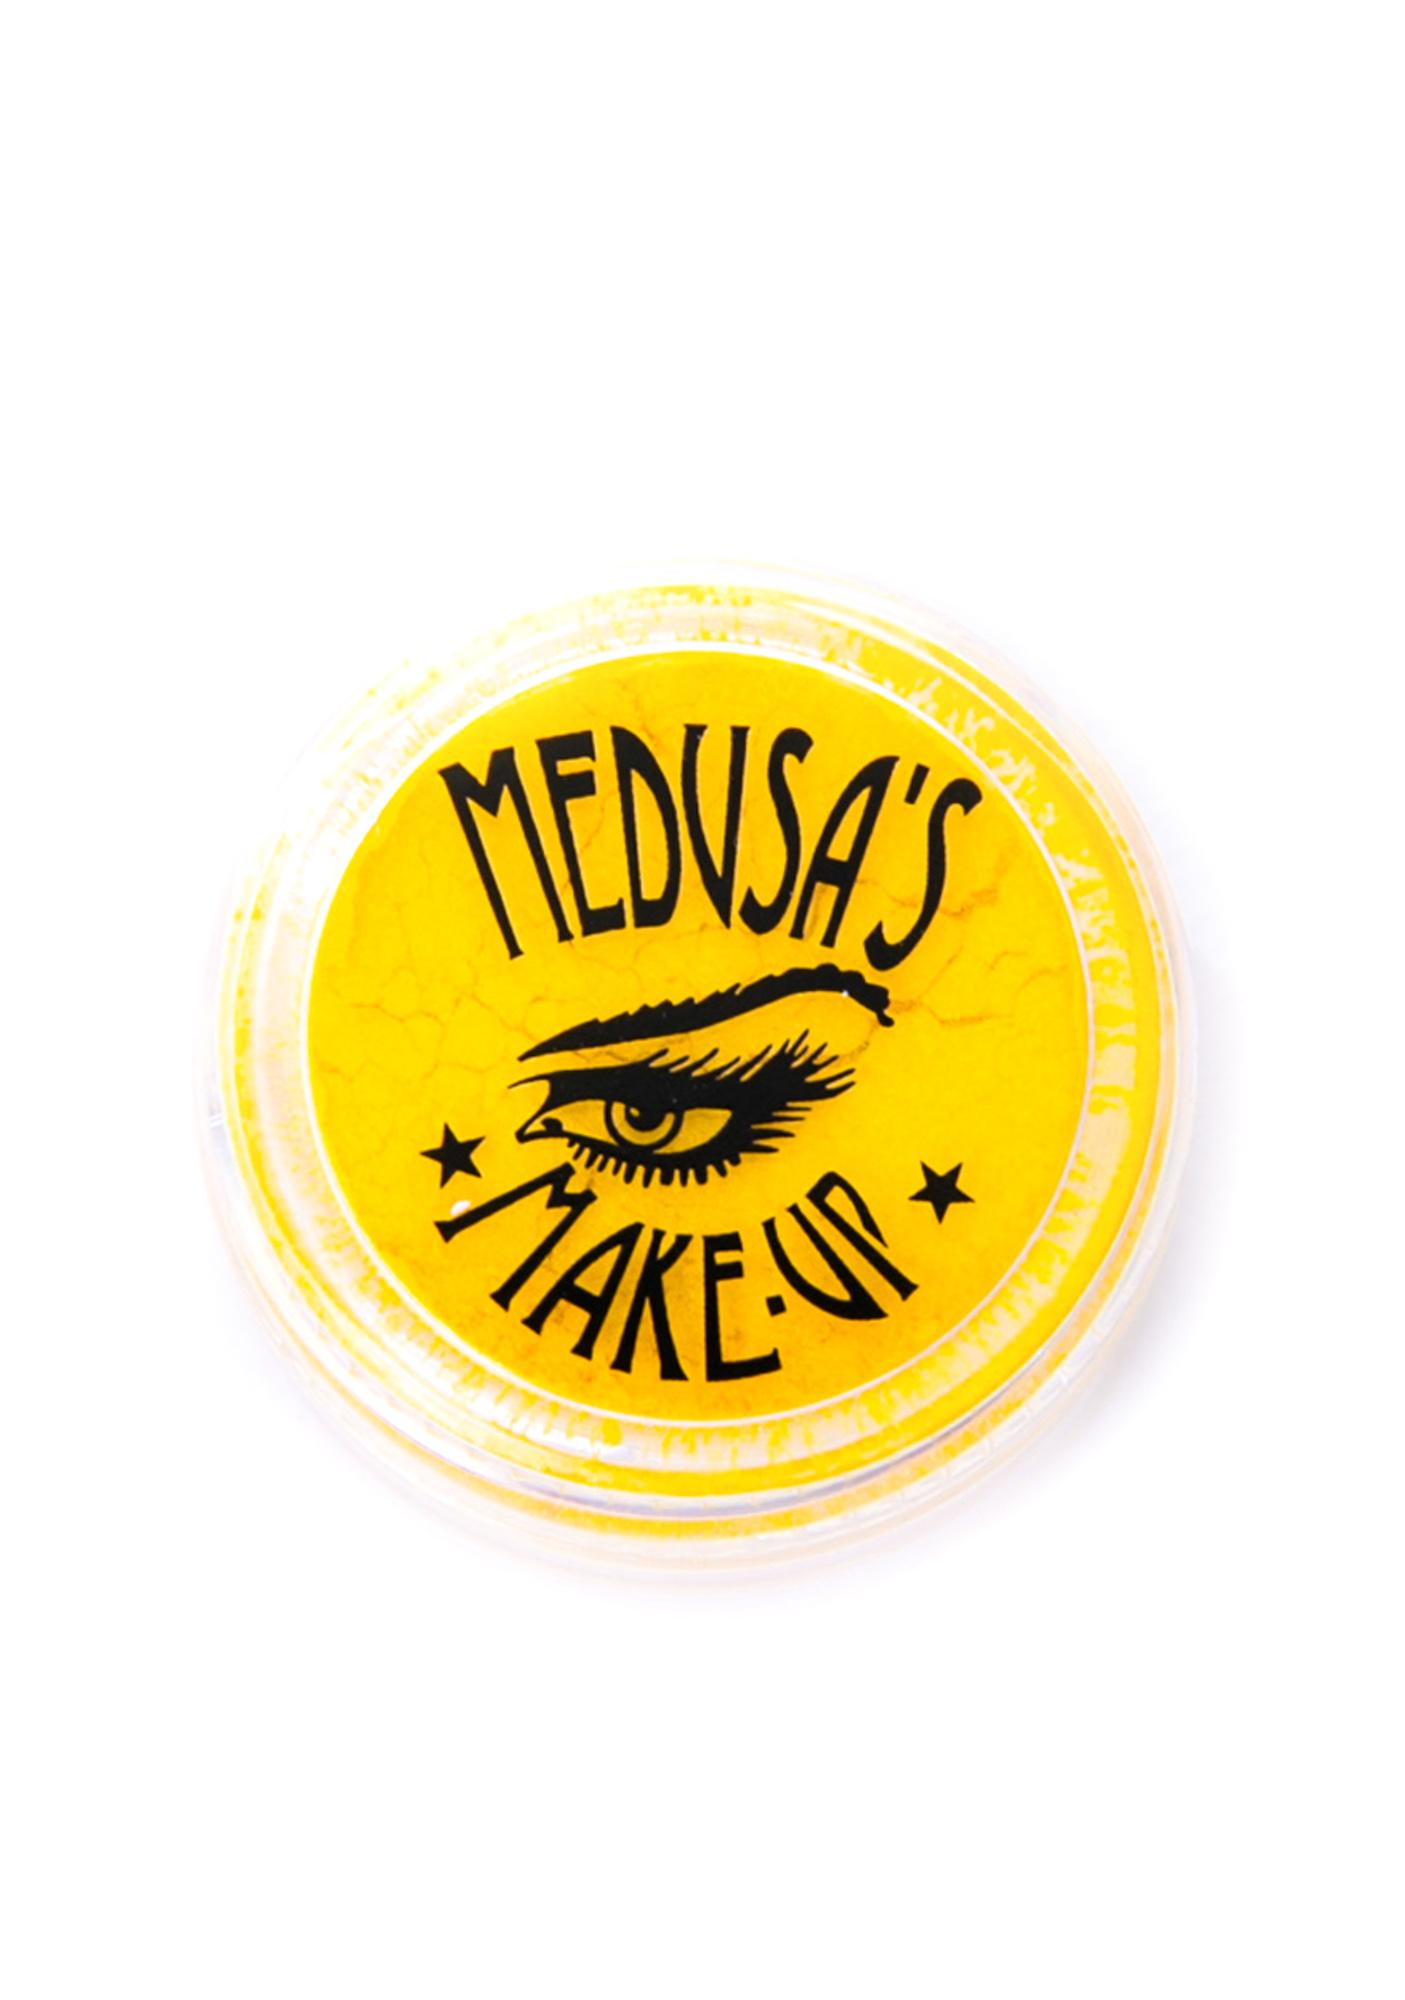 Medusa's Makeup Eye-credible Dust